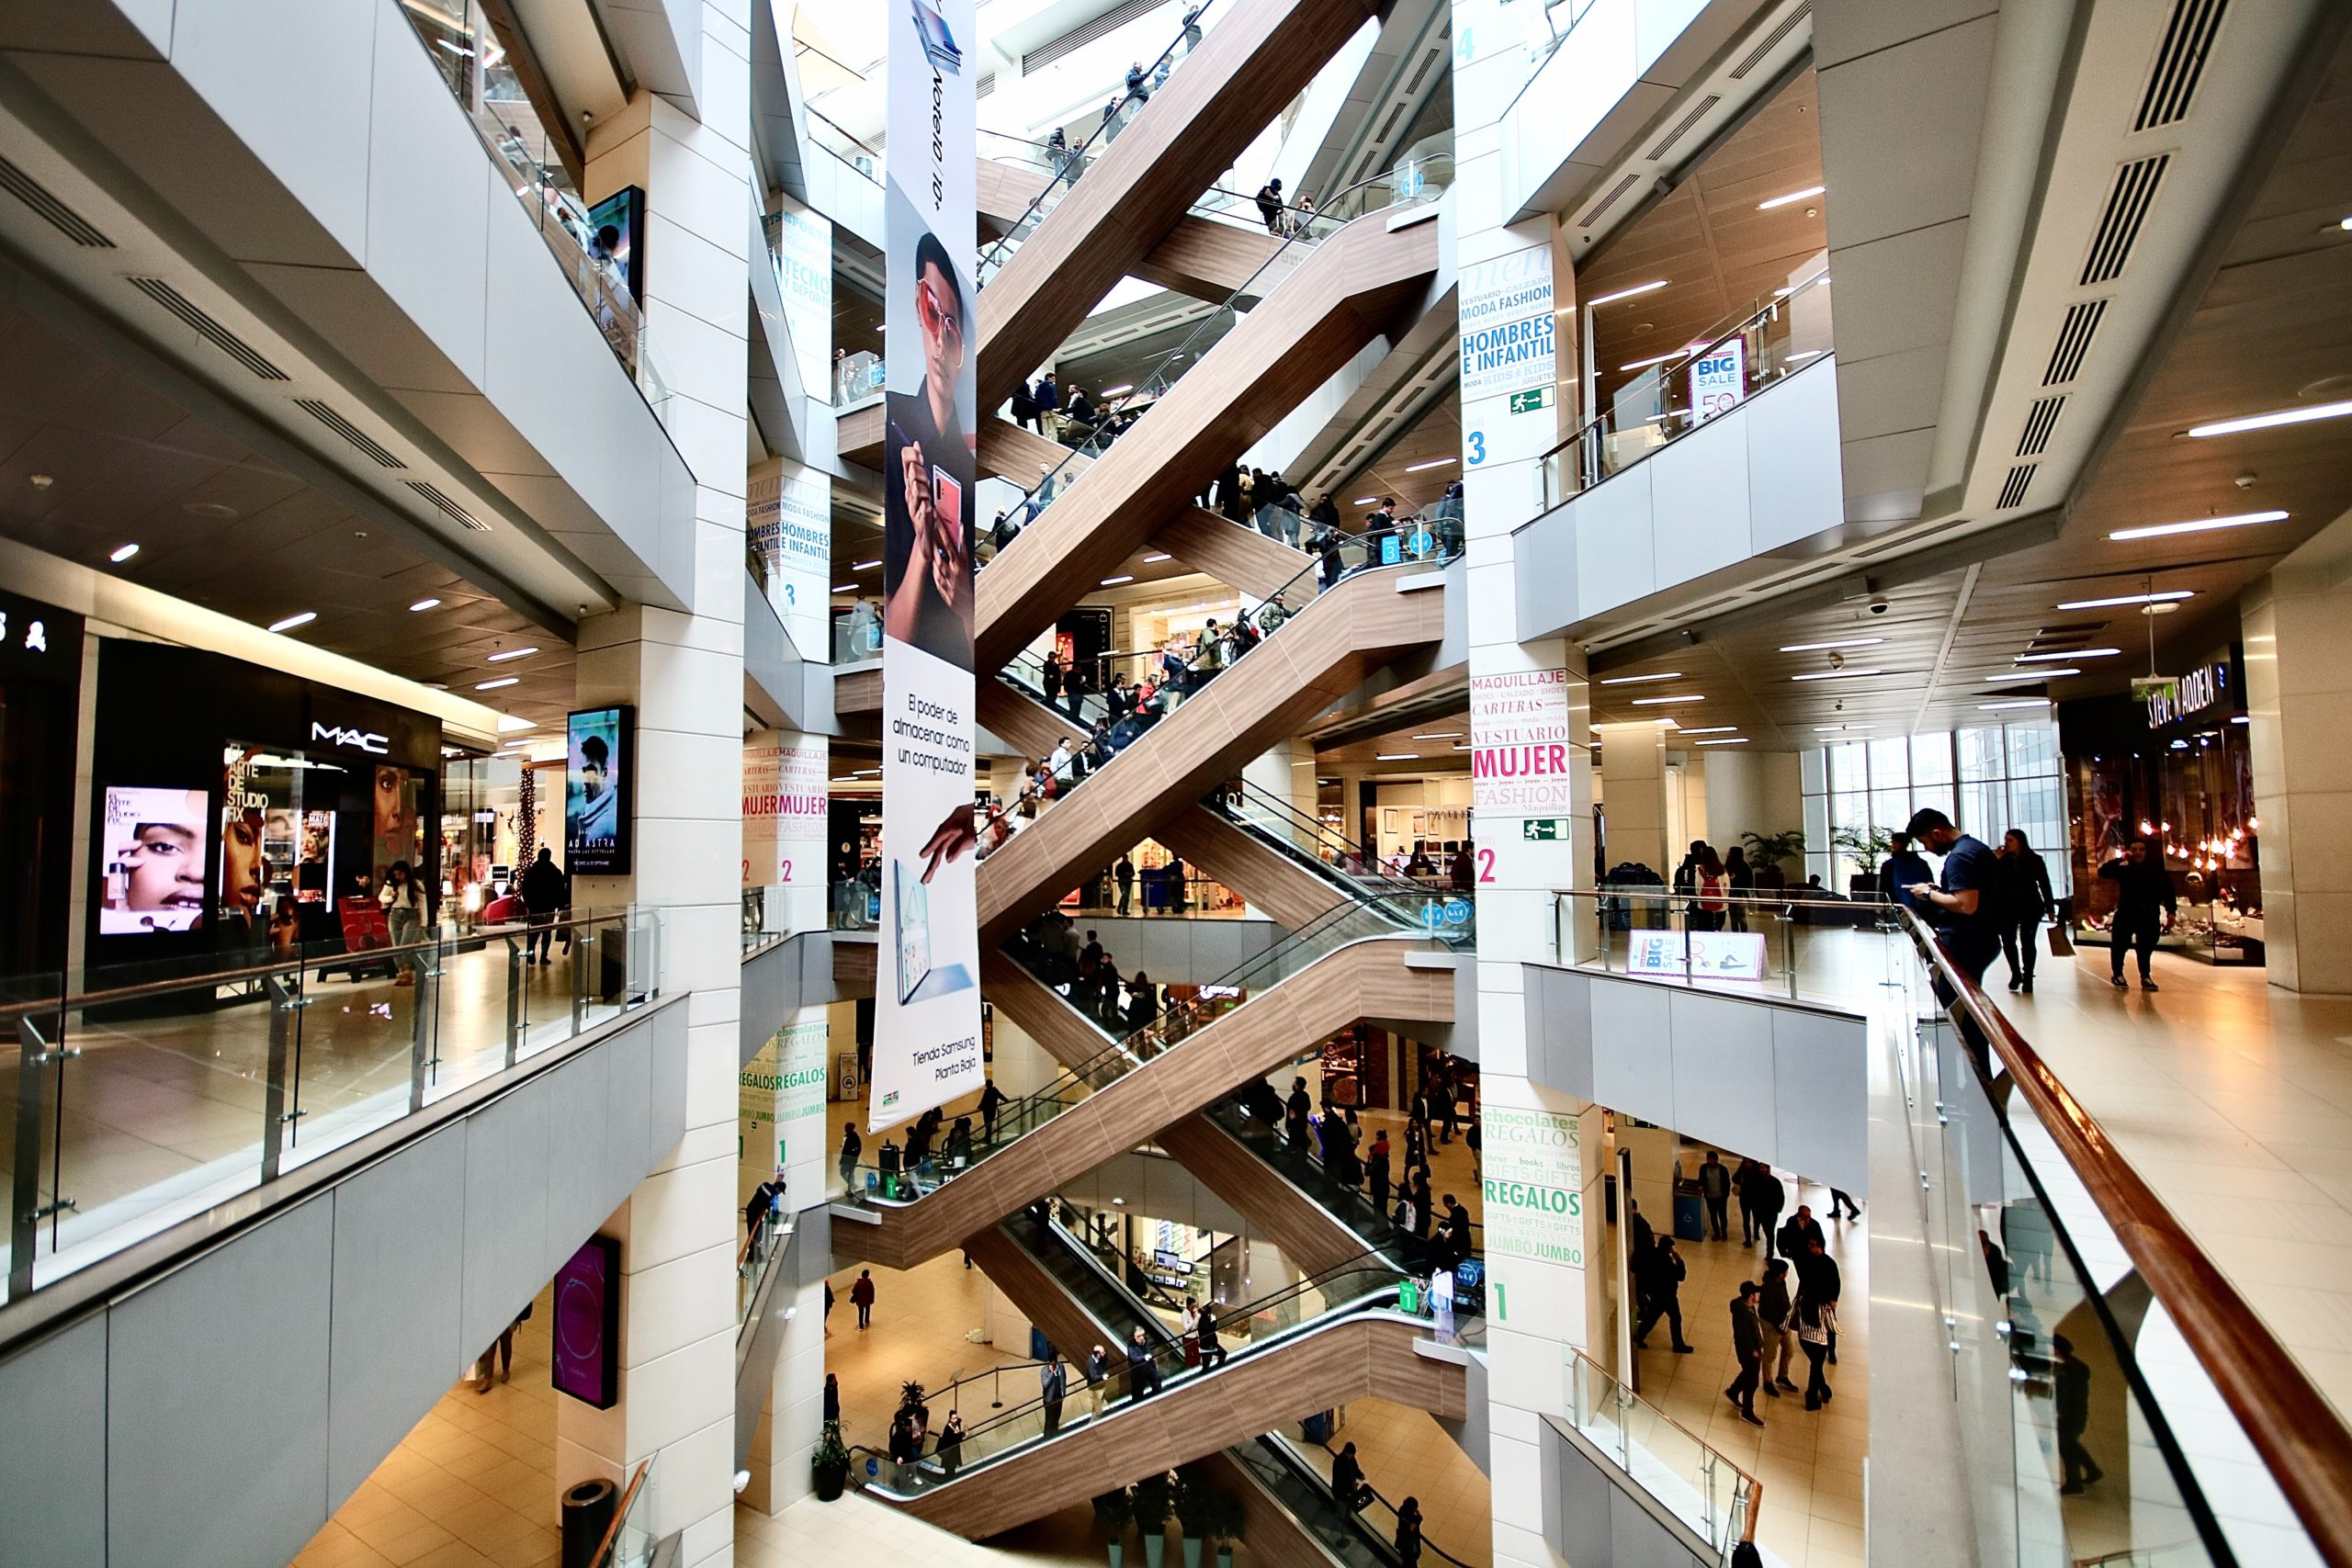 A wide view of a shopping mall's escalators and stores on several floors.